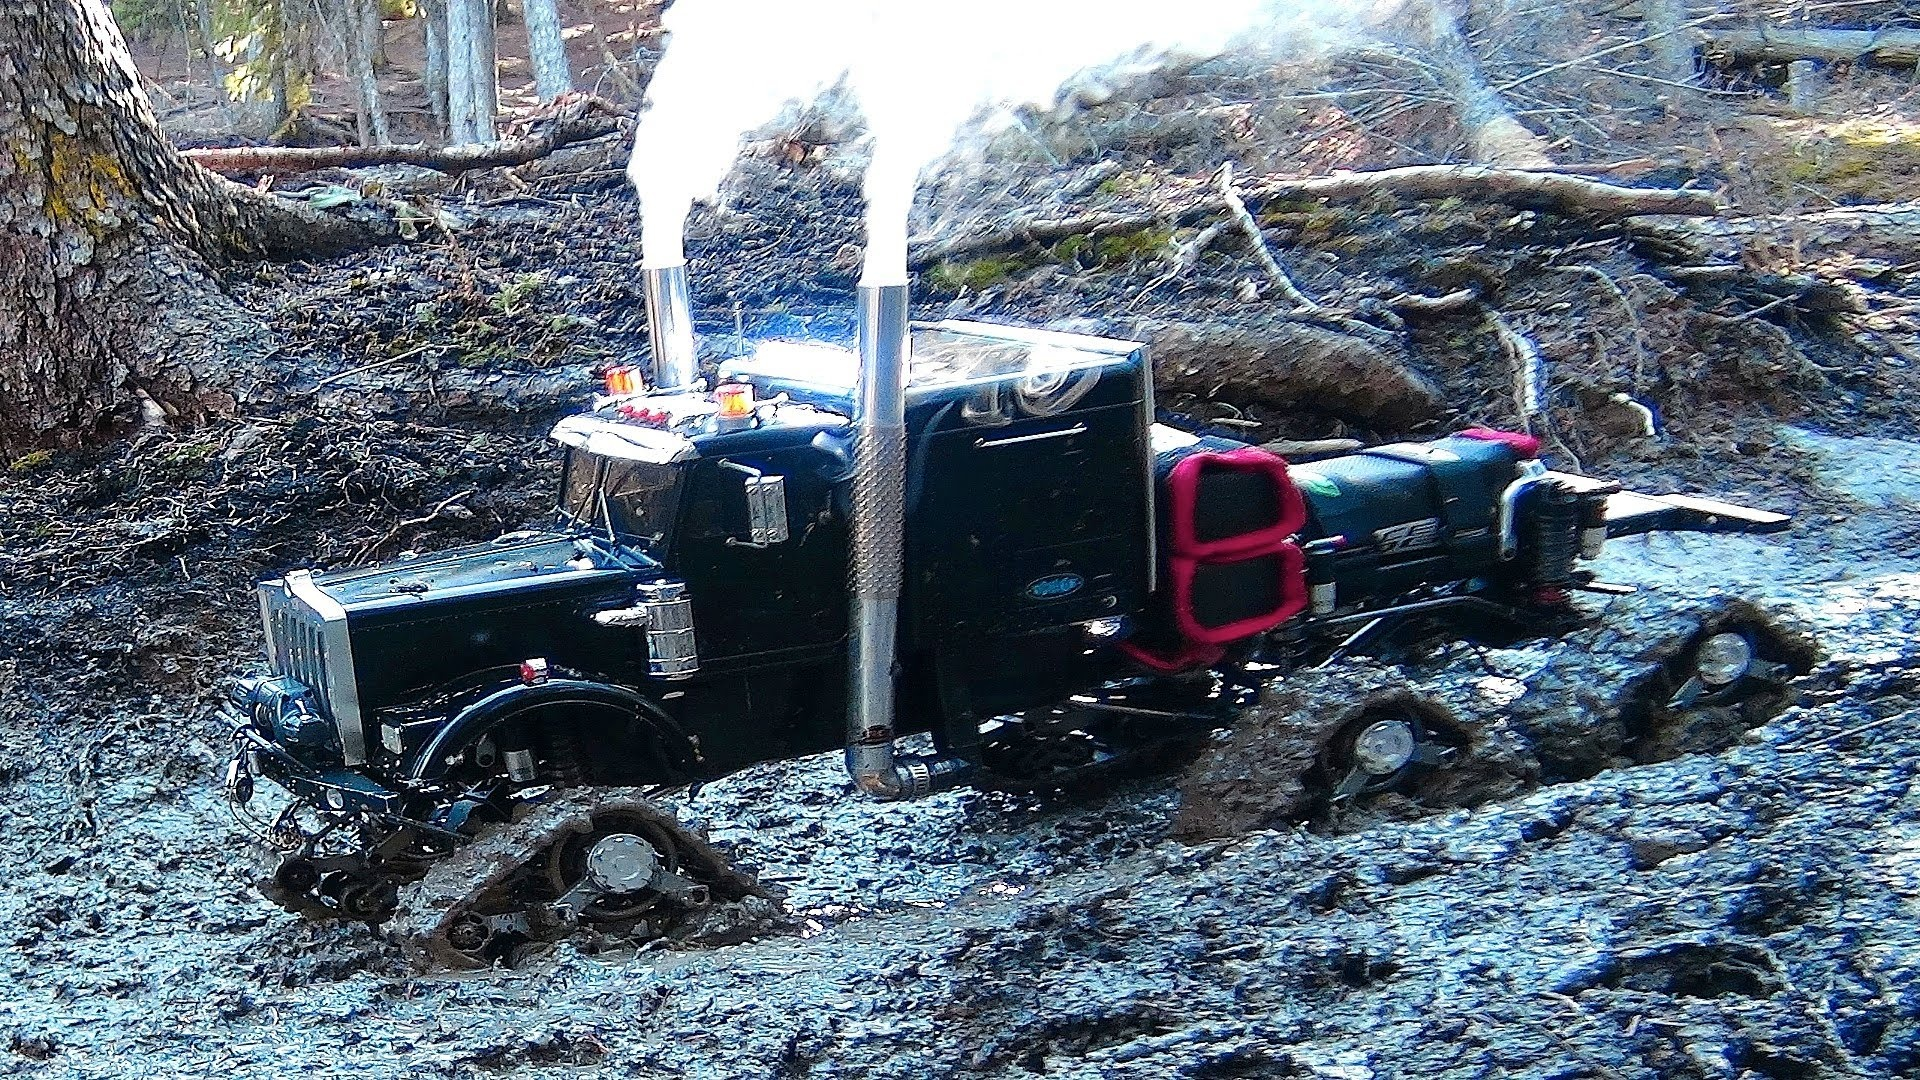 rc mud trucks for sale with Crazy Rc 4x4 Beast Mt 6wd Evo Predator Custom Semi Truck Getting Muddy And Cute on 131 0912 1965 Chevy C10 Mud Truck furthermore ddmotorsystems furthermore 4x4 Rc Trucks Mudding Will Make Your Day likewise Event Coverage Central Illinois Rc Pullers together with 497884 Ucfab You Choose 1 9 Ultra 4 Build 4.